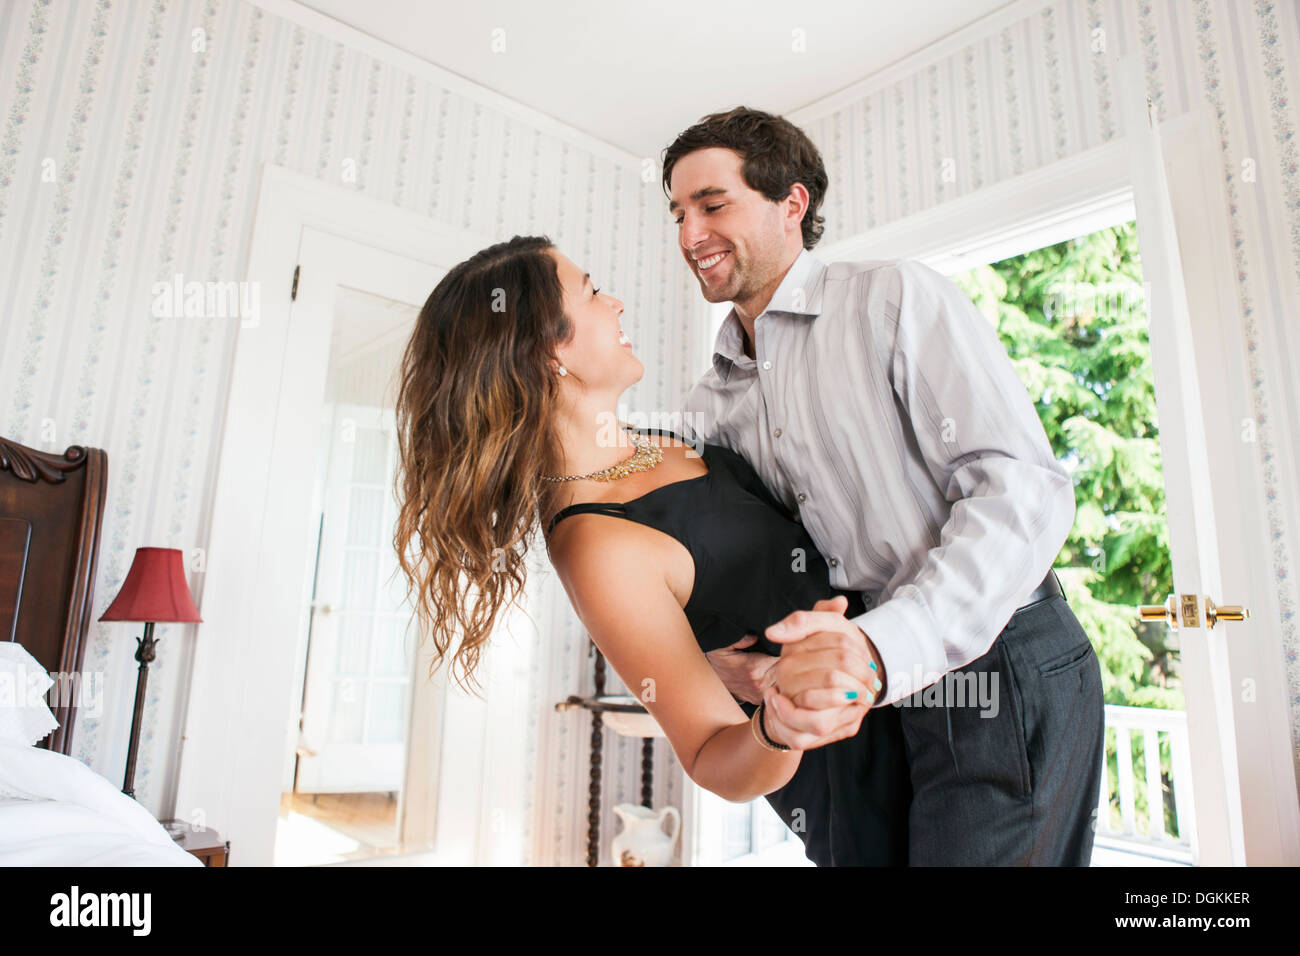 Stock Photo   Young couple dancing in bedroom. Young Couple Dancing In Bedroom Stock Photo  Royalty Free Image